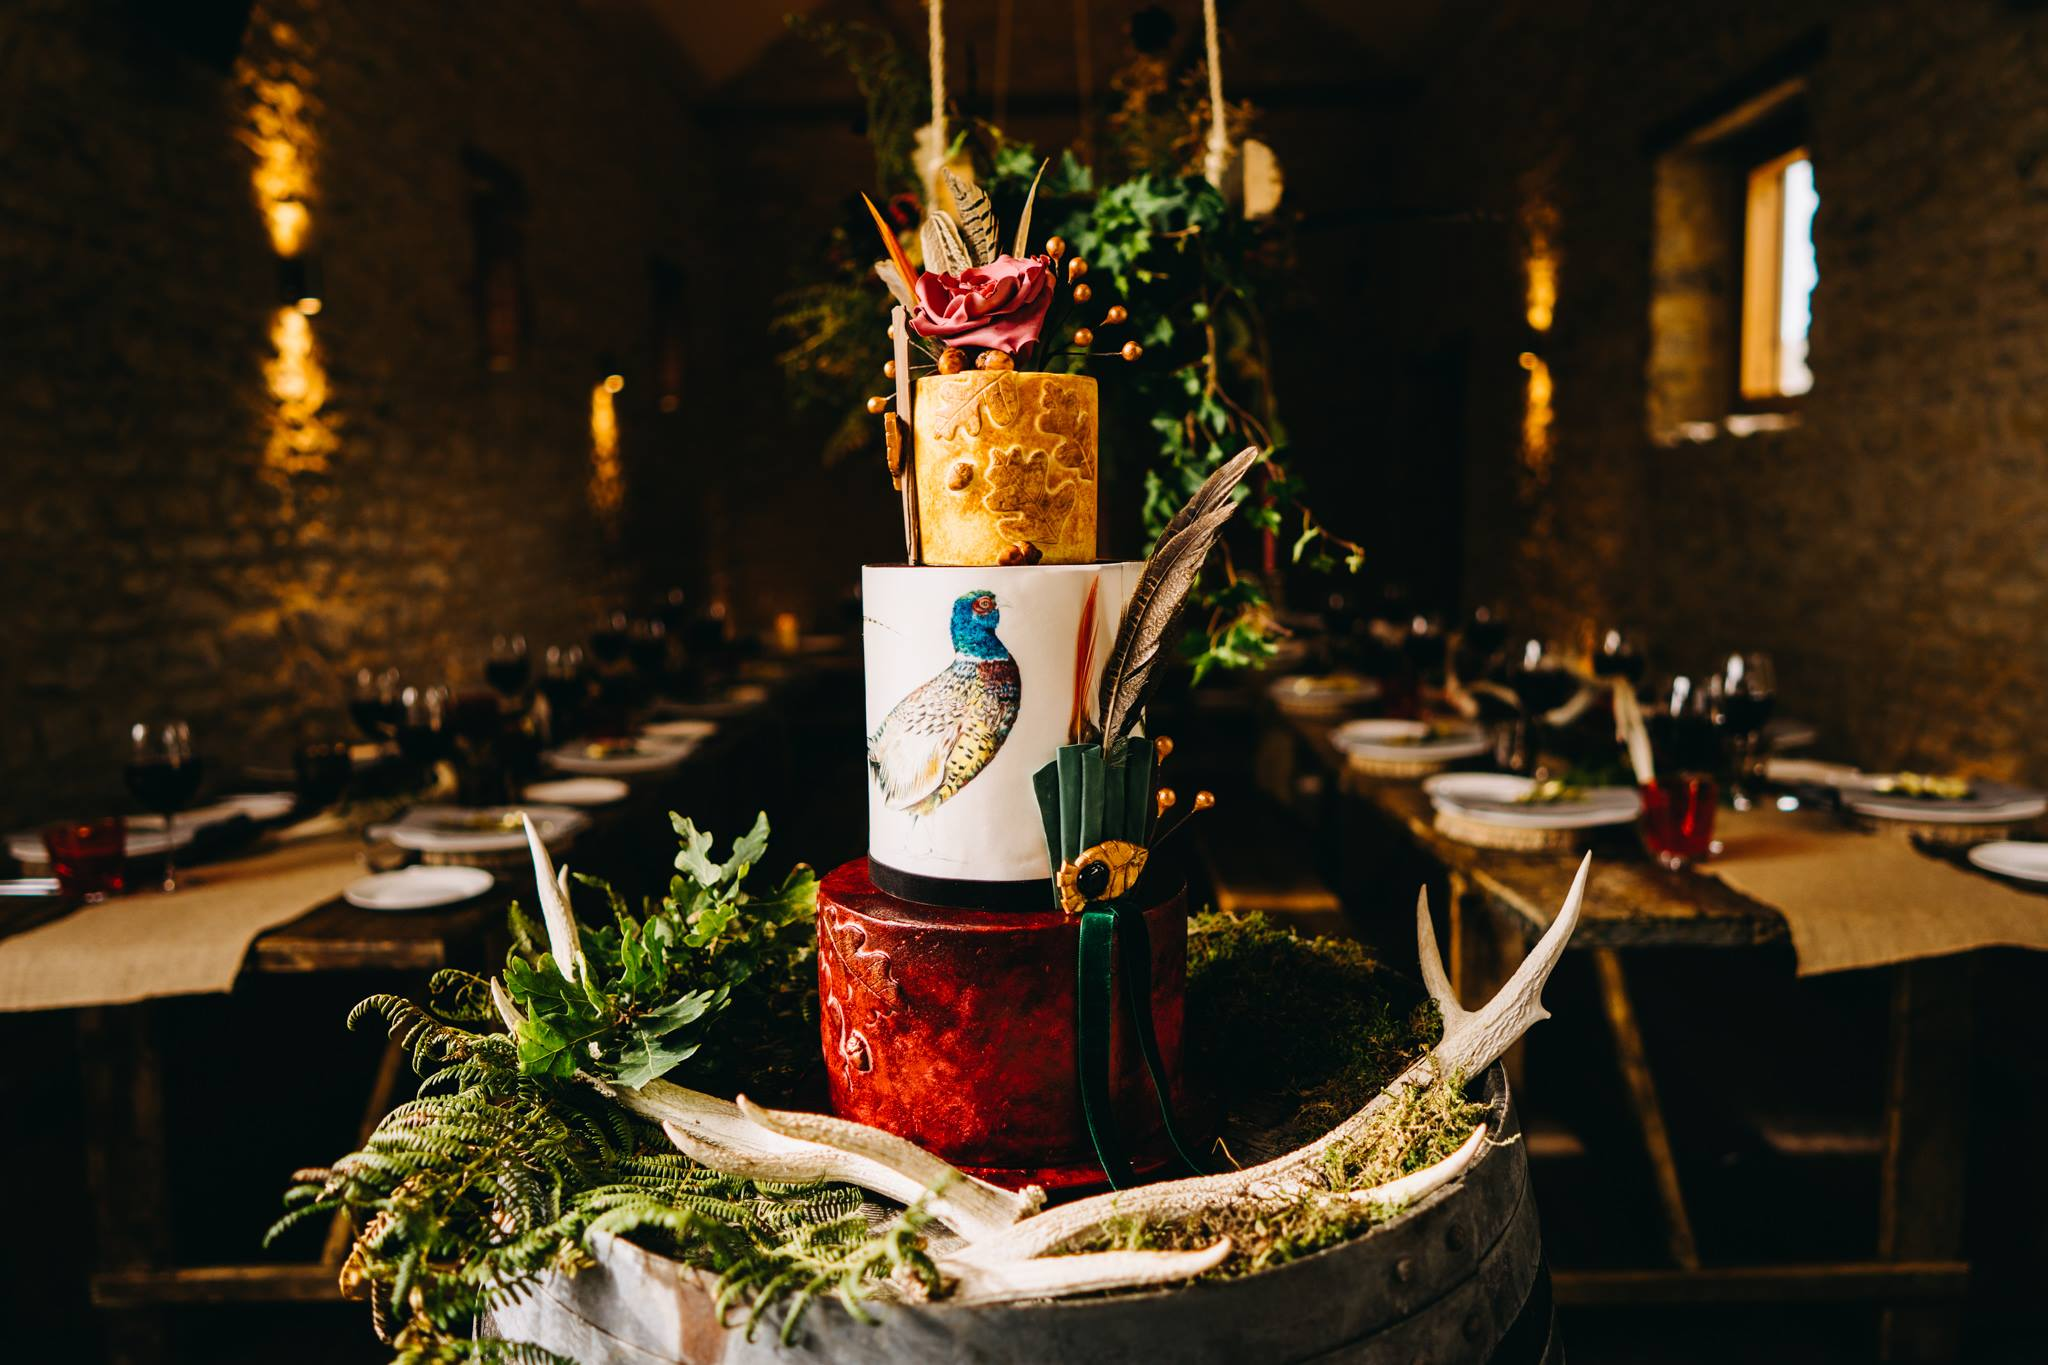 Countryside hunting themed wedding cake with pheasant